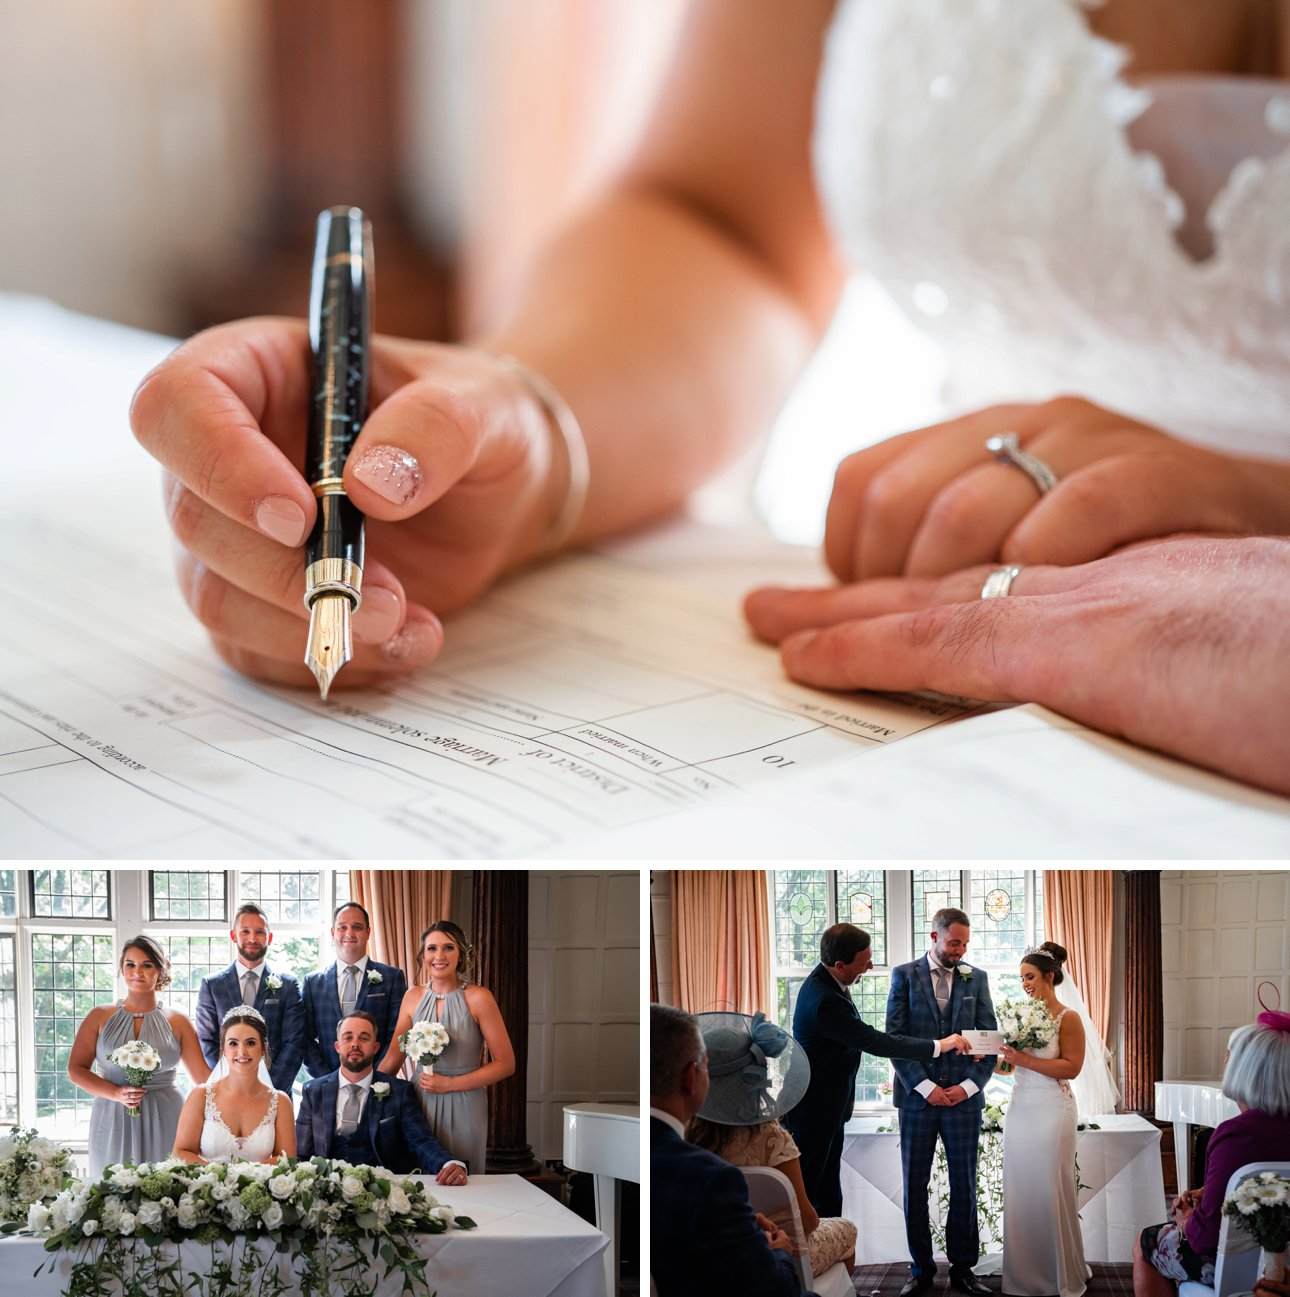 The bride and groom sign the register after their wedding ceremony at The Manor Elstree.